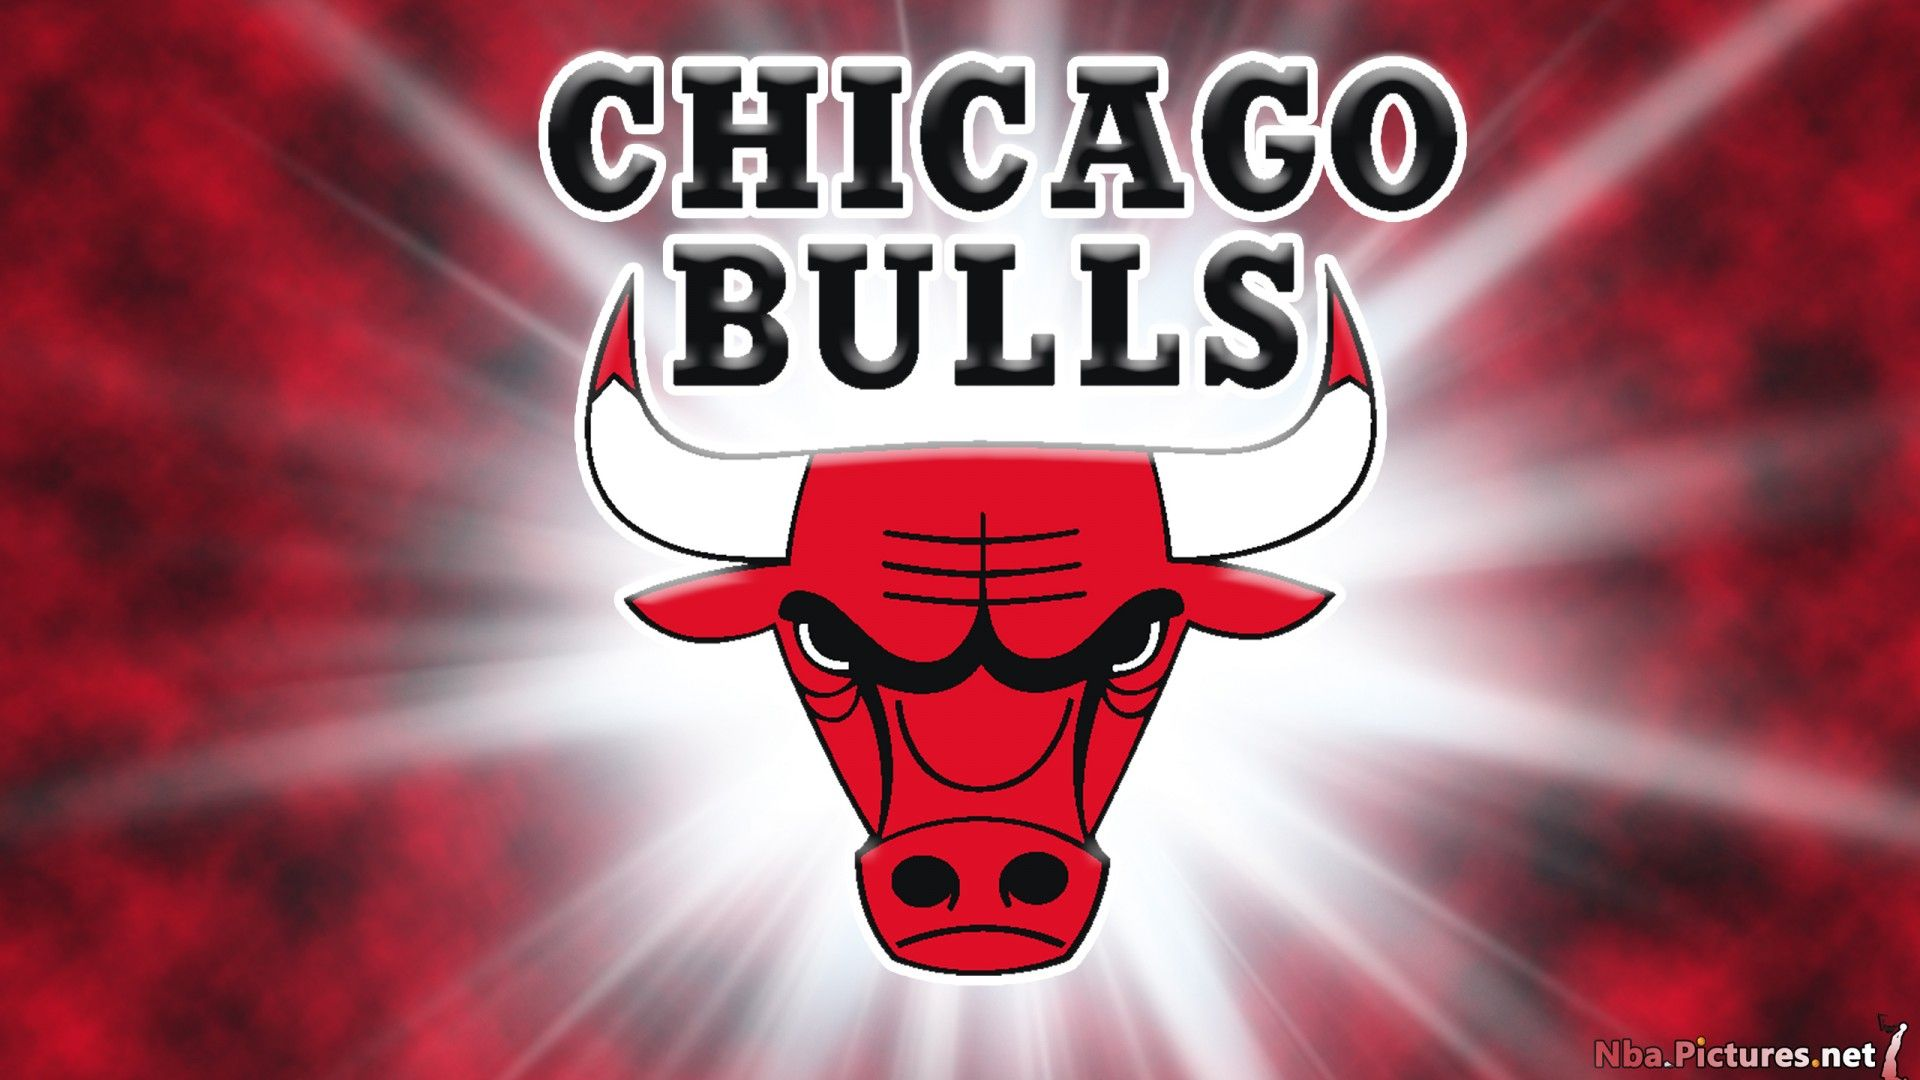 Are you really a bulls fan chicago bulls chicago bulls voltagebd Images